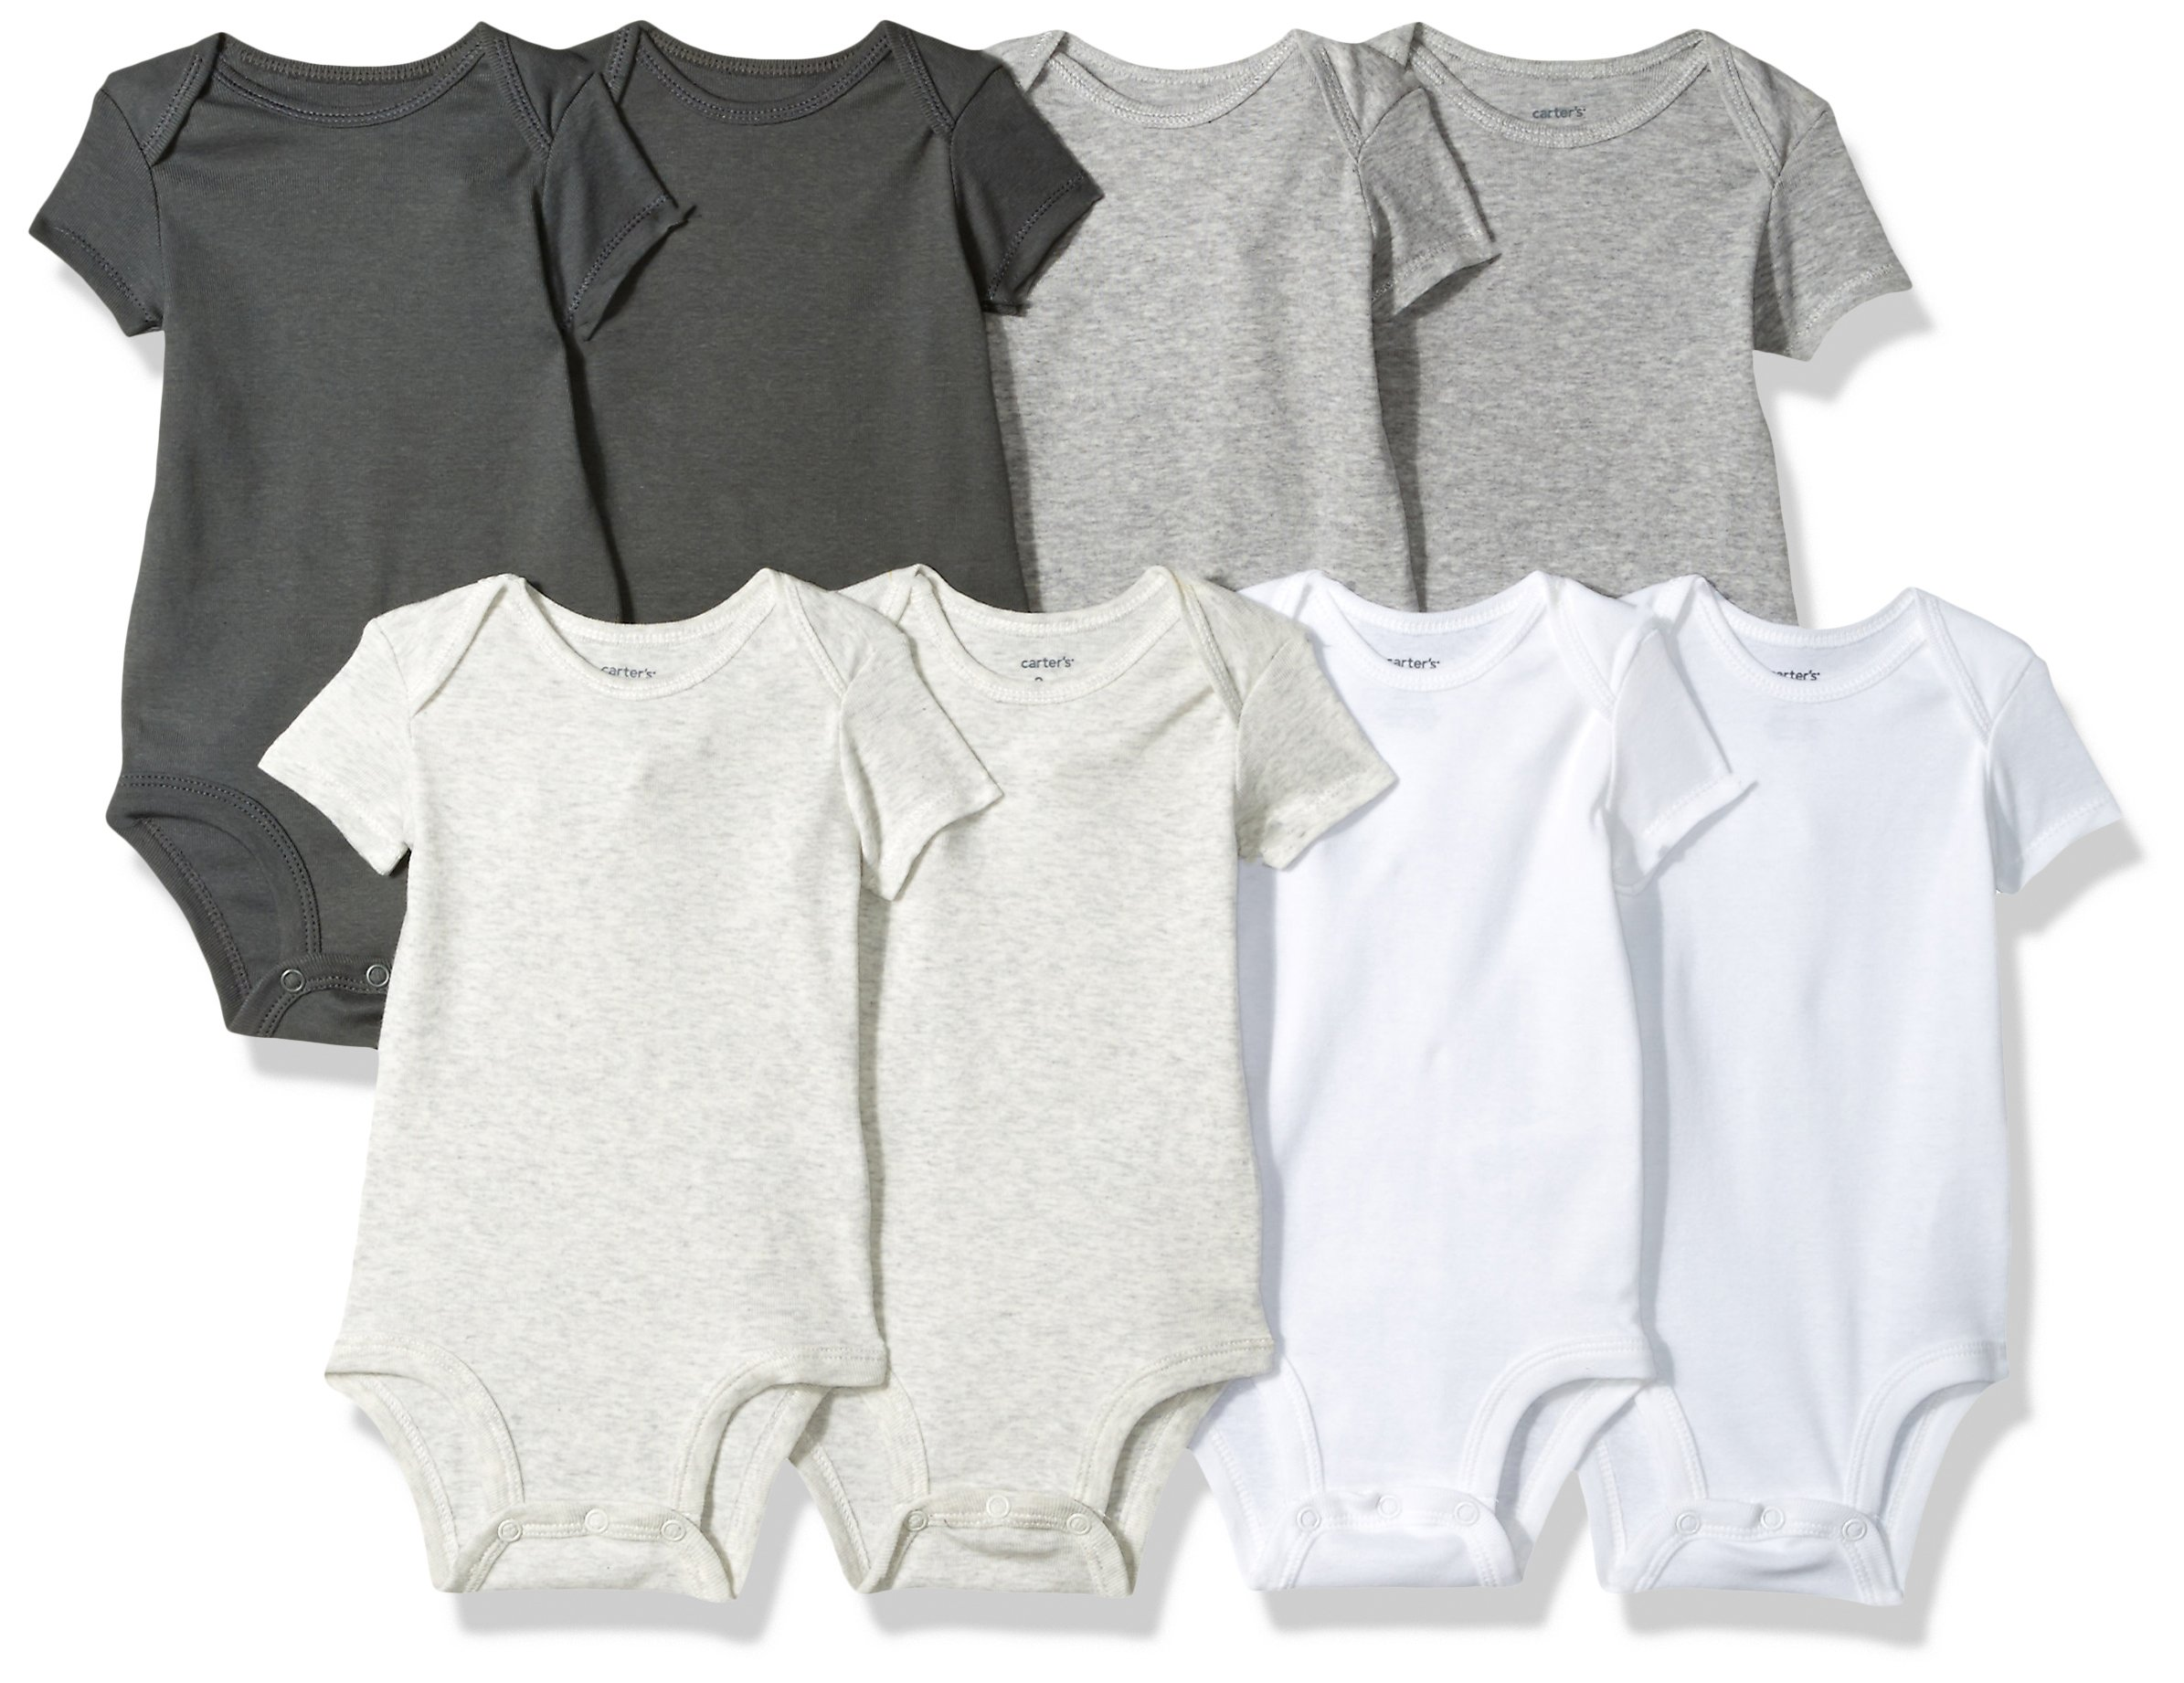 Carter's Baby 8 Pack Short-Sleeve Bodysuits, Multi Oatmeal, 3 Months